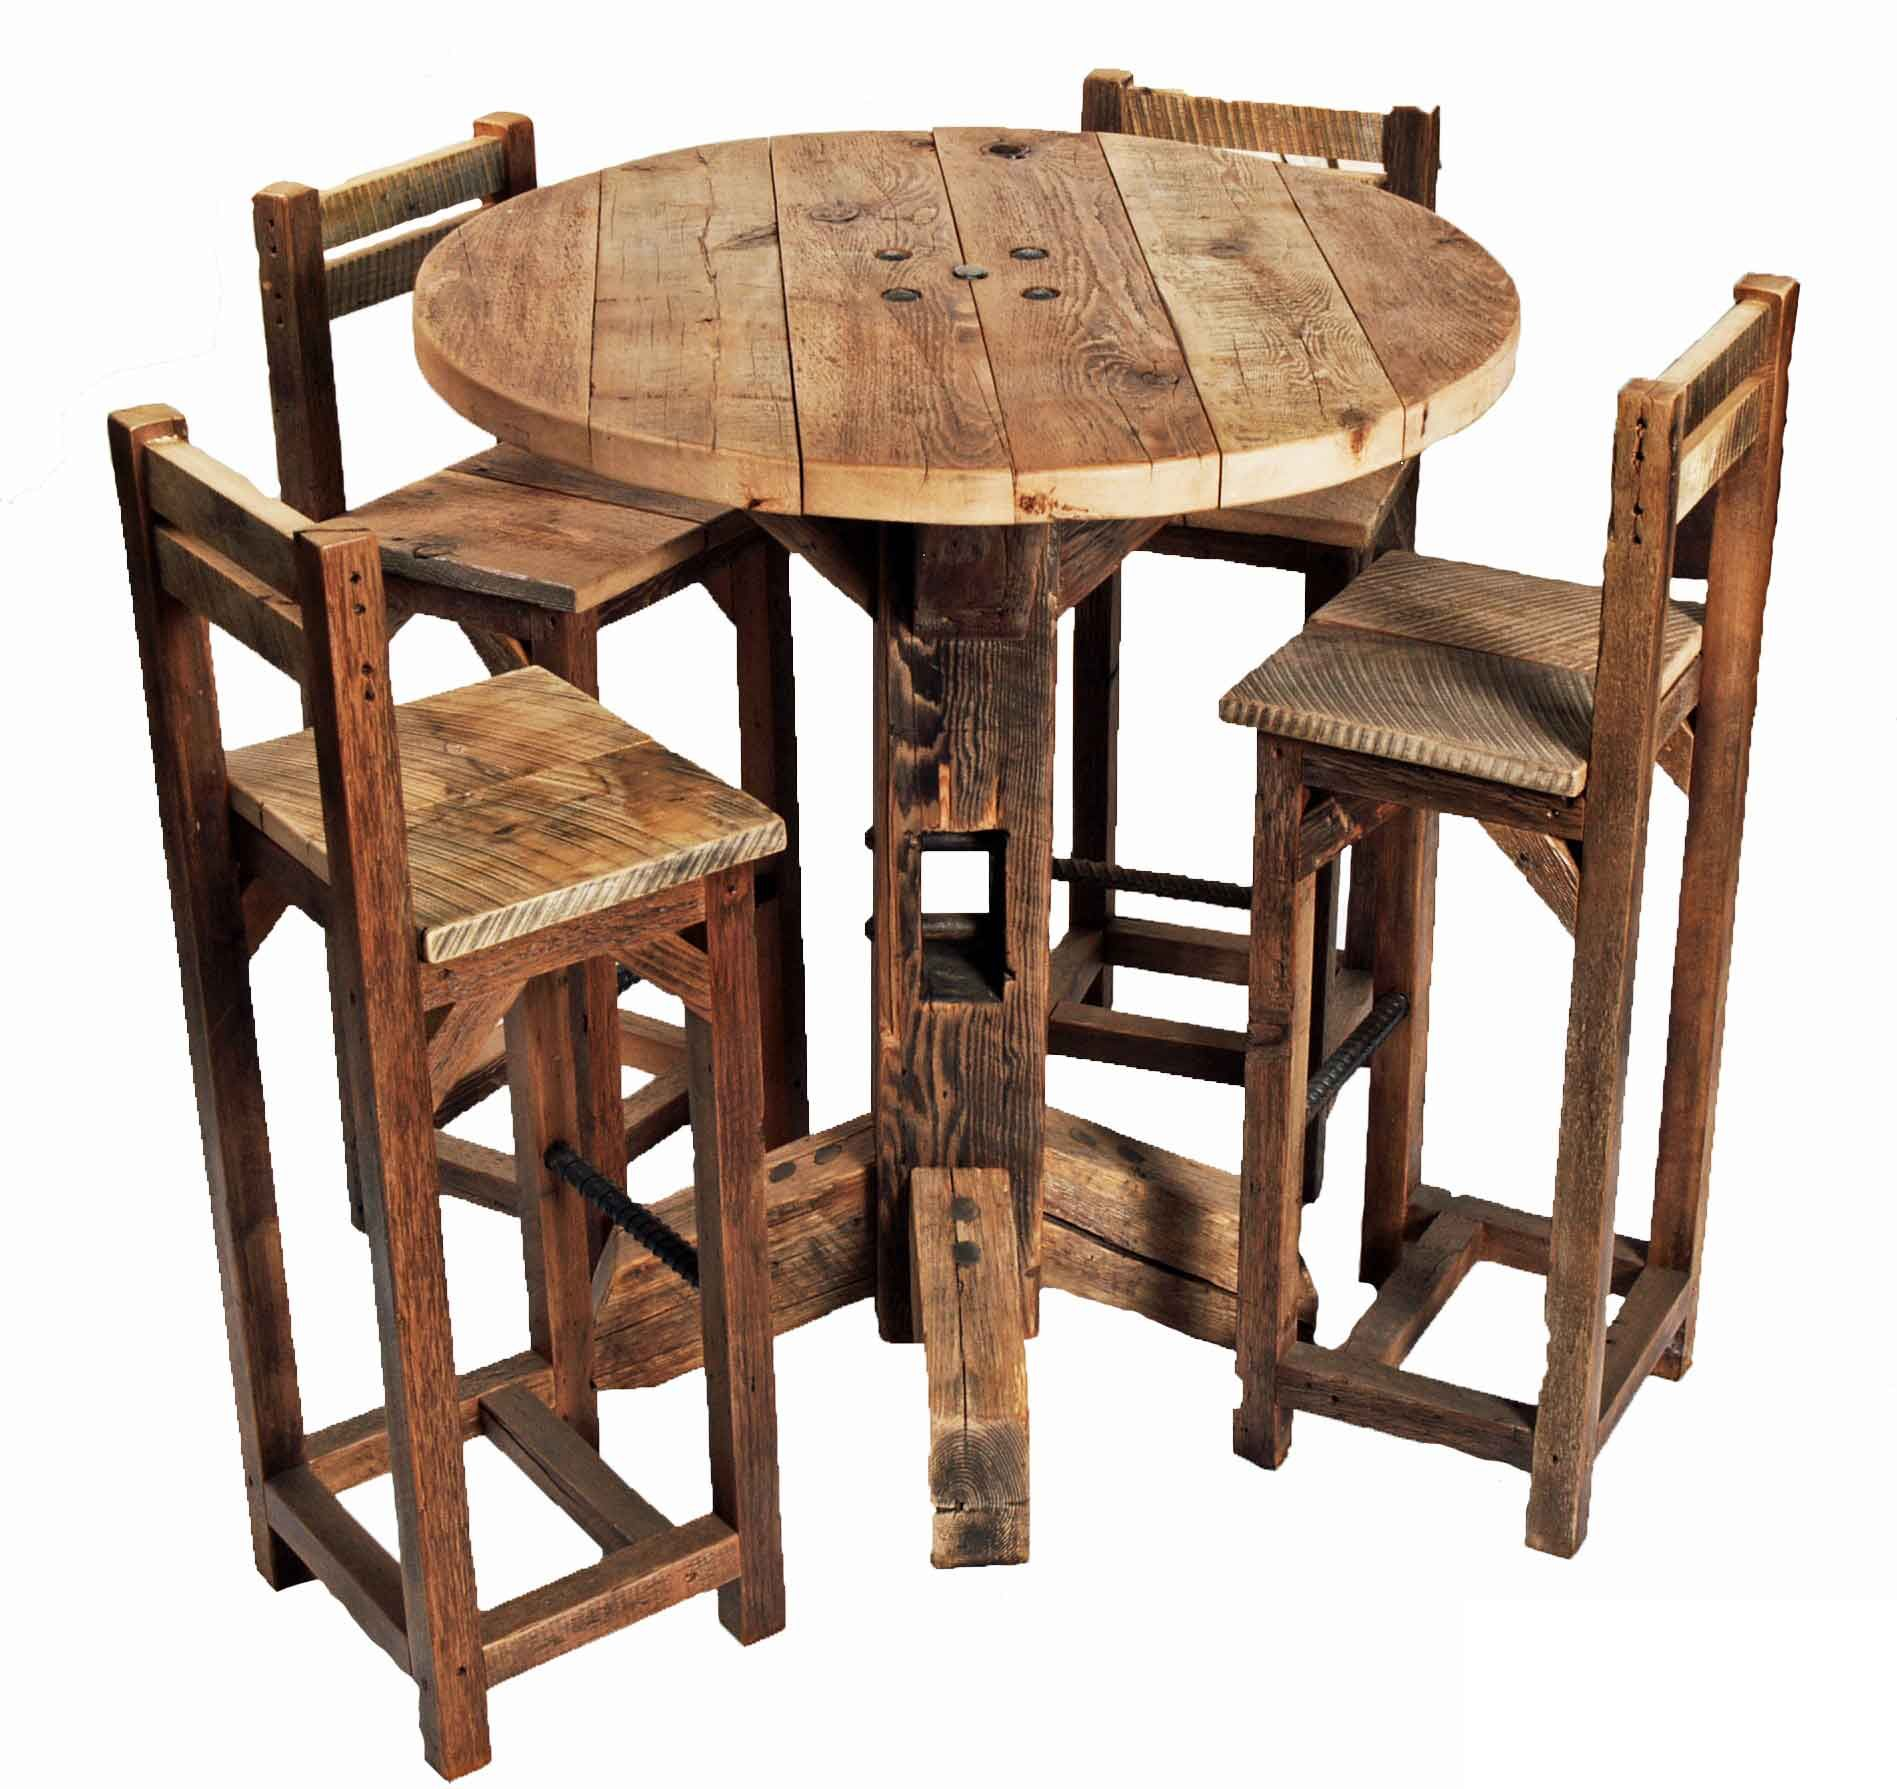 Furniture old rustic small high round top kitchen table for Table and chair set